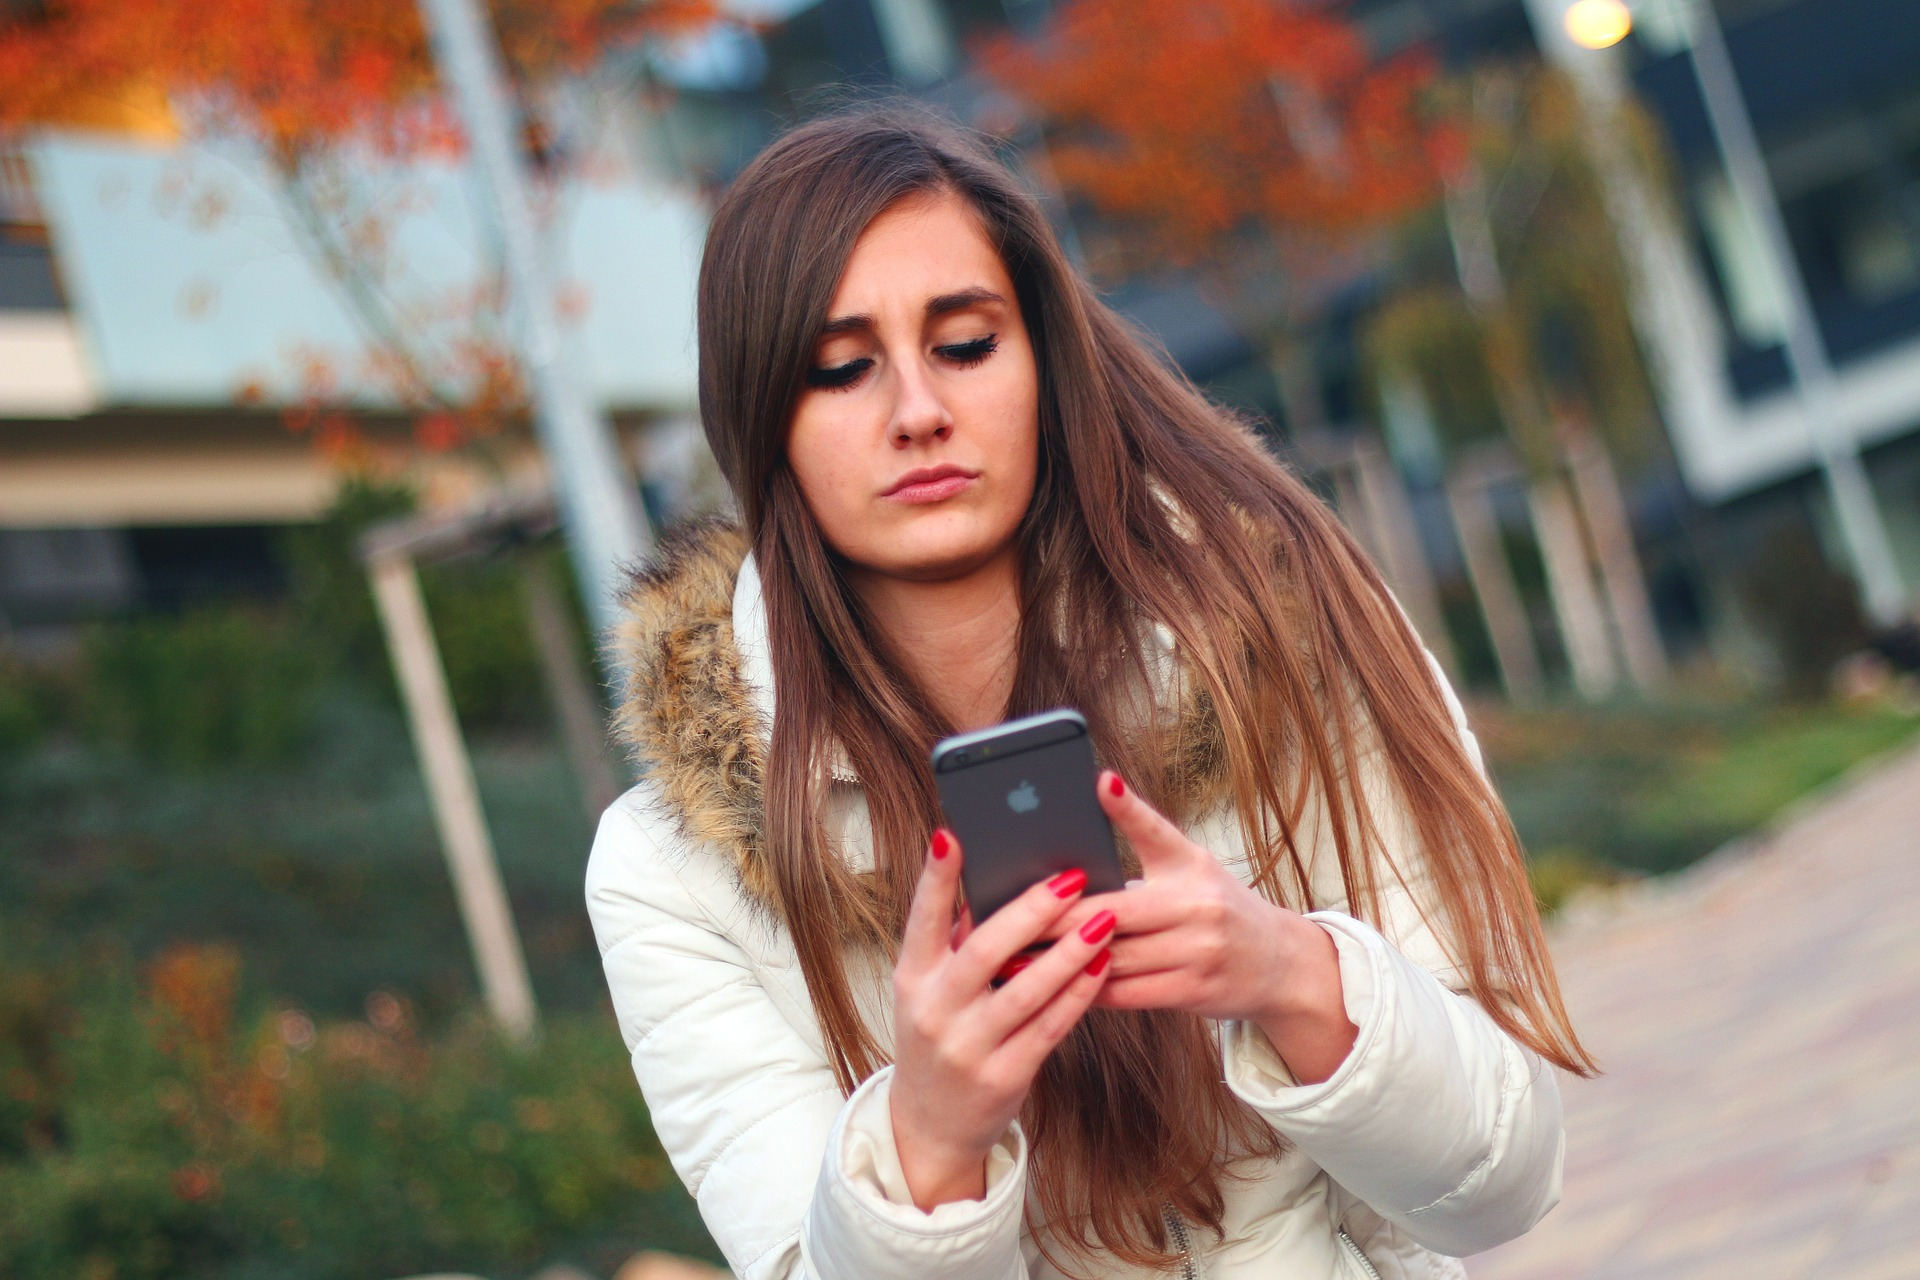 How Texting Can Facilitate Infidelity—And How to Prevent It